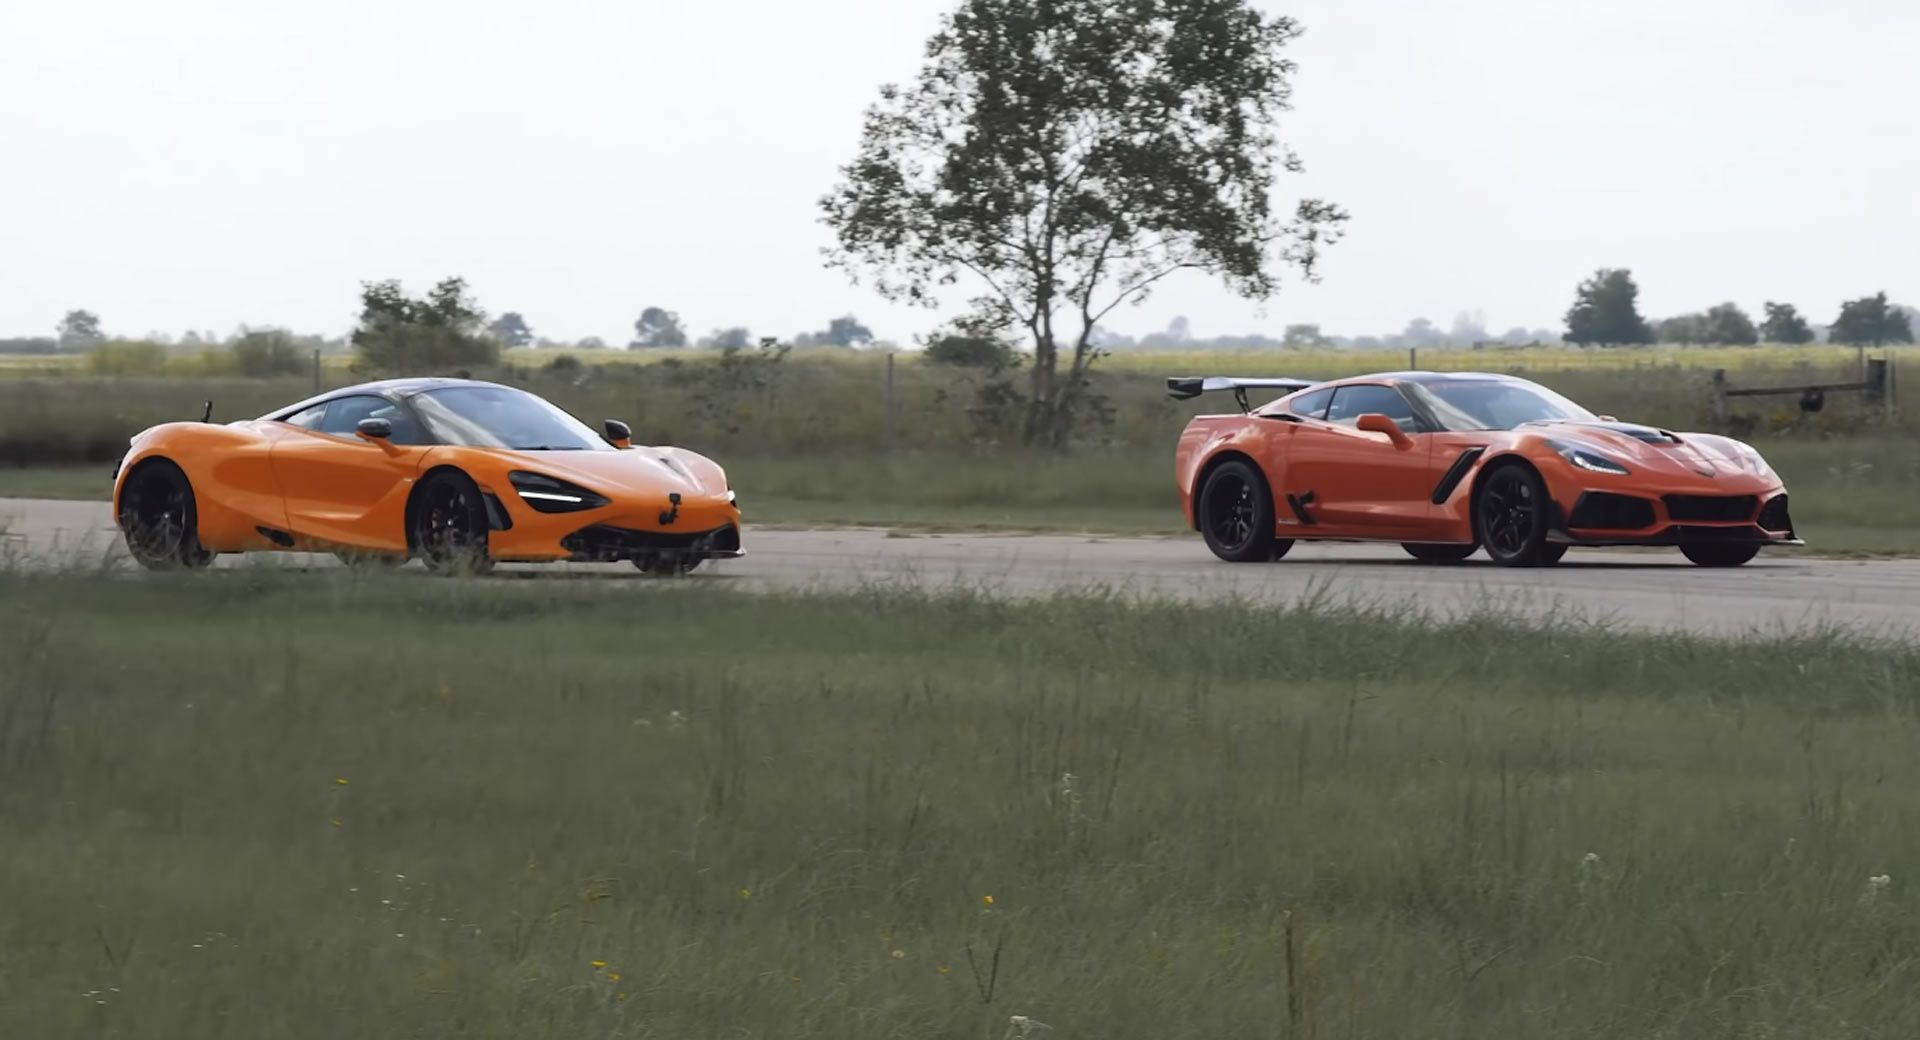 Watch Hennessey Corvette Zr1 Humiliating Mclaren 720s Corvette Zr1 Corvette Super Cars